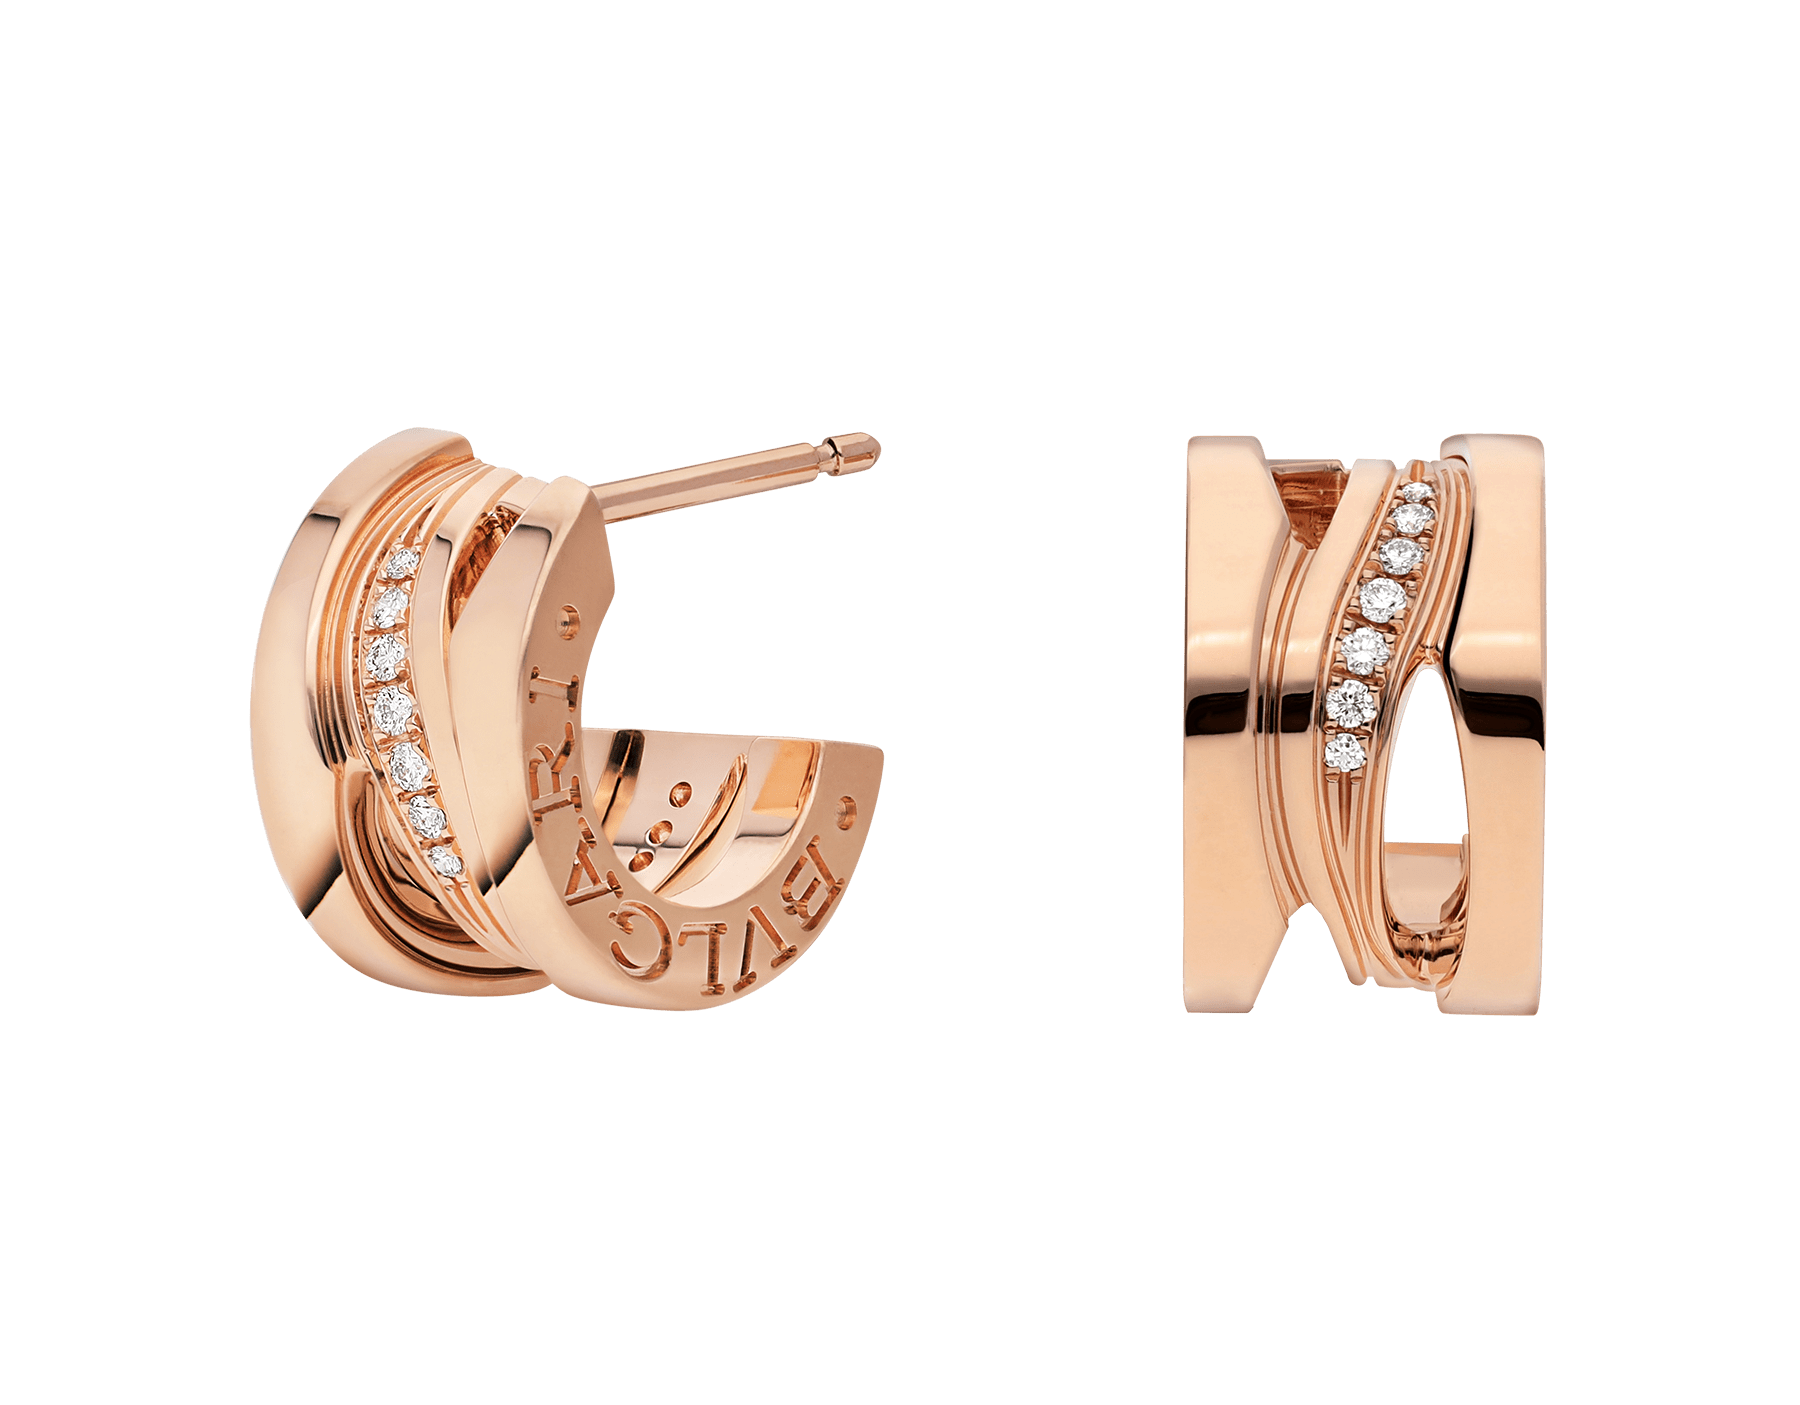 B.zero1 Design Legend 18 kt rose gold earrings set with pavé diamonds on the spiral. 356131 image 1